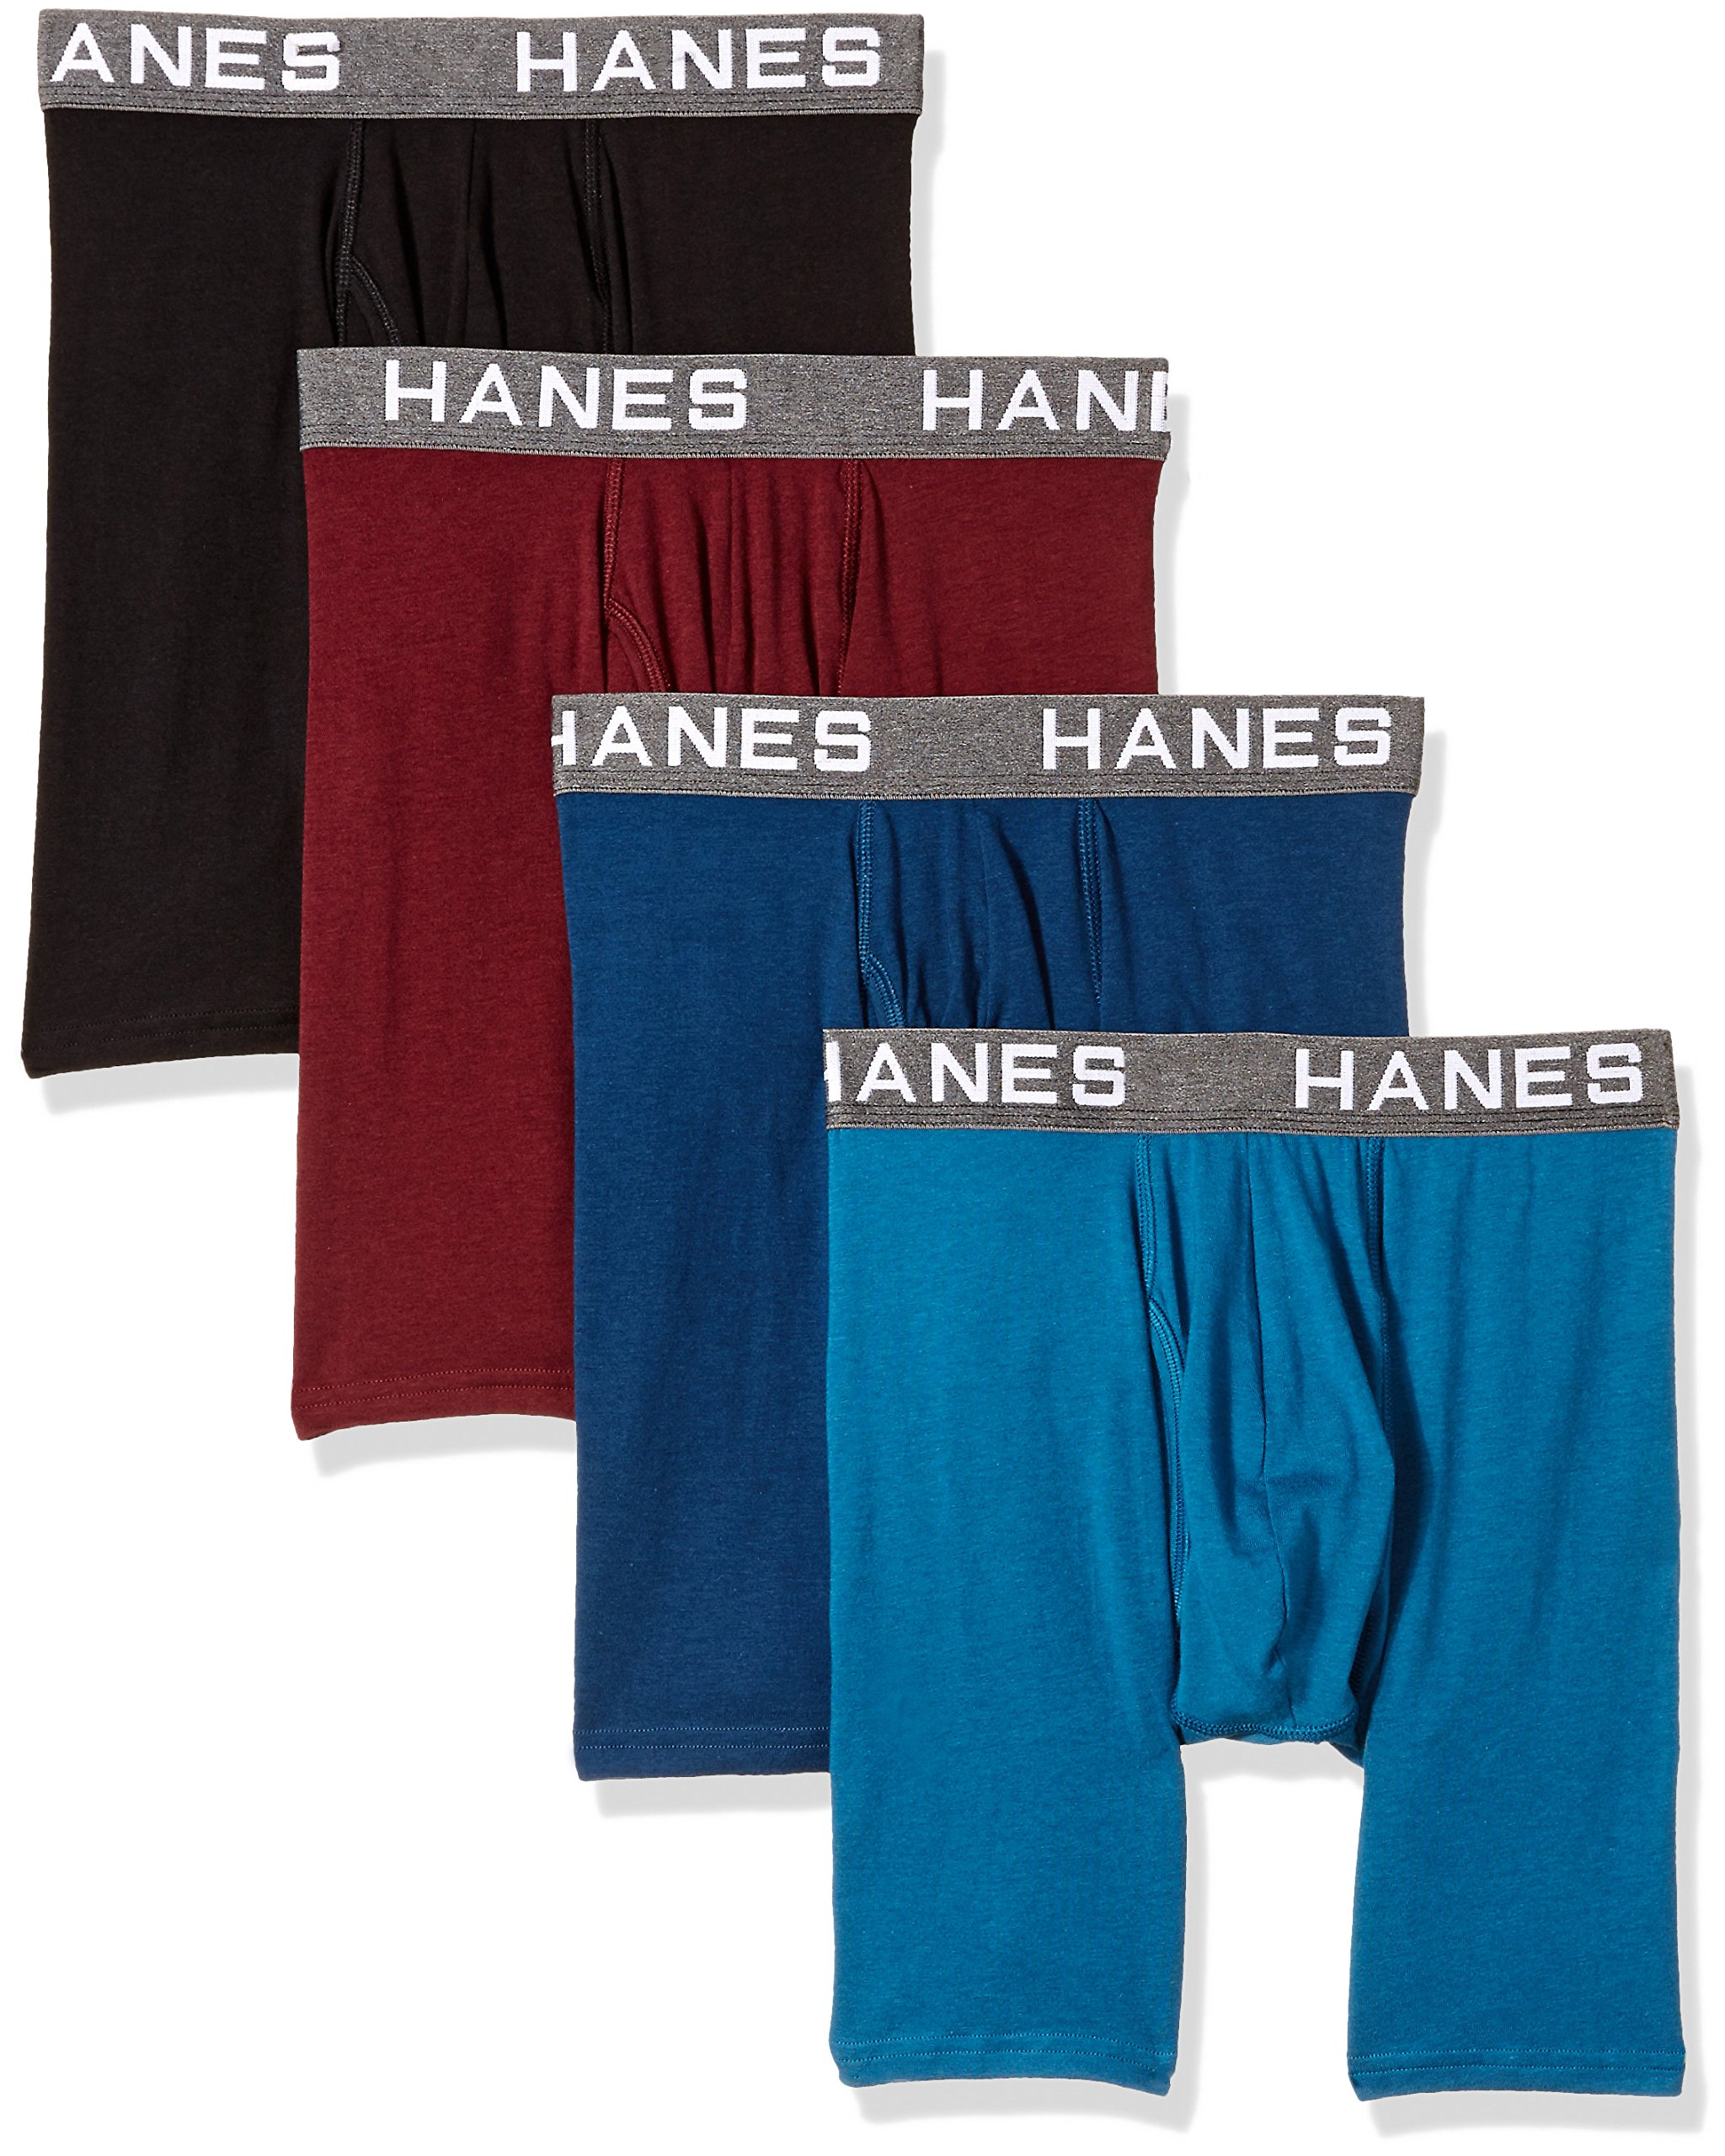 Hanes Ultimate Men's Comfort Flex Fit Ultra Soft Cotton Modal Blend Boxer Brief 4-Pack